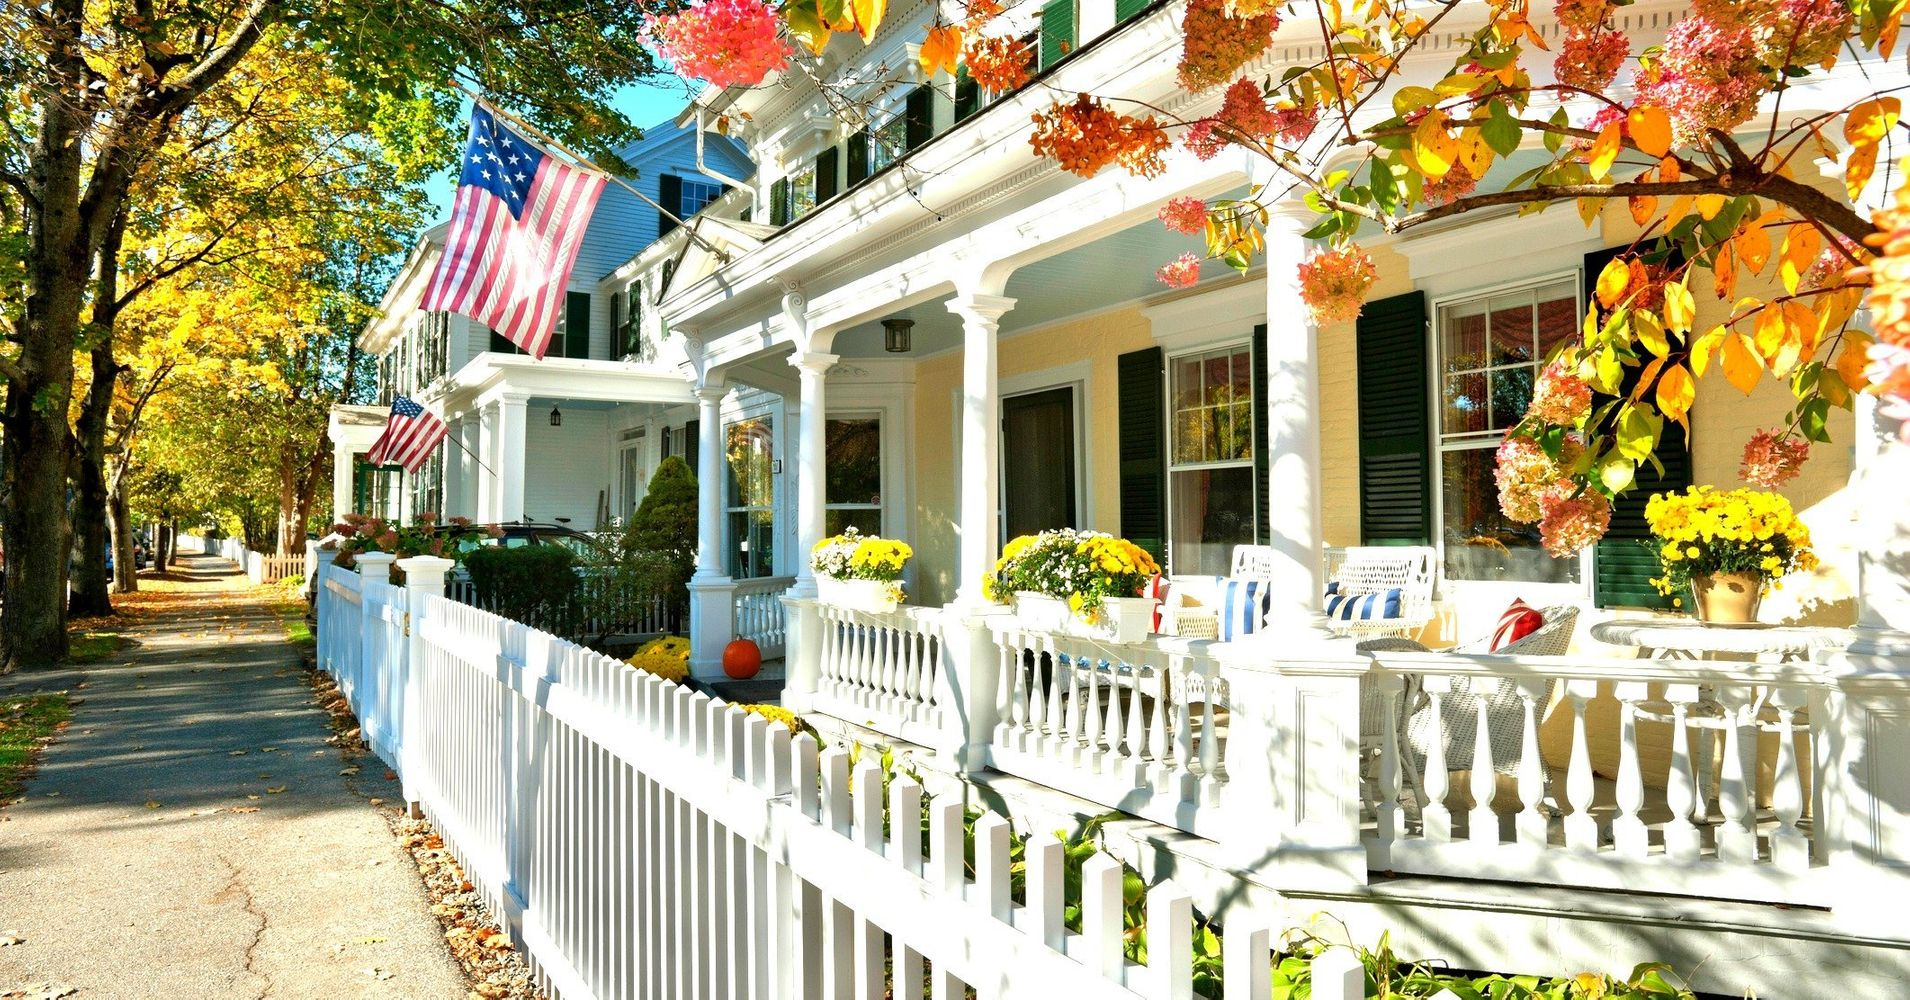 The 10 Best Small Cities To Live In The U S Huffpost